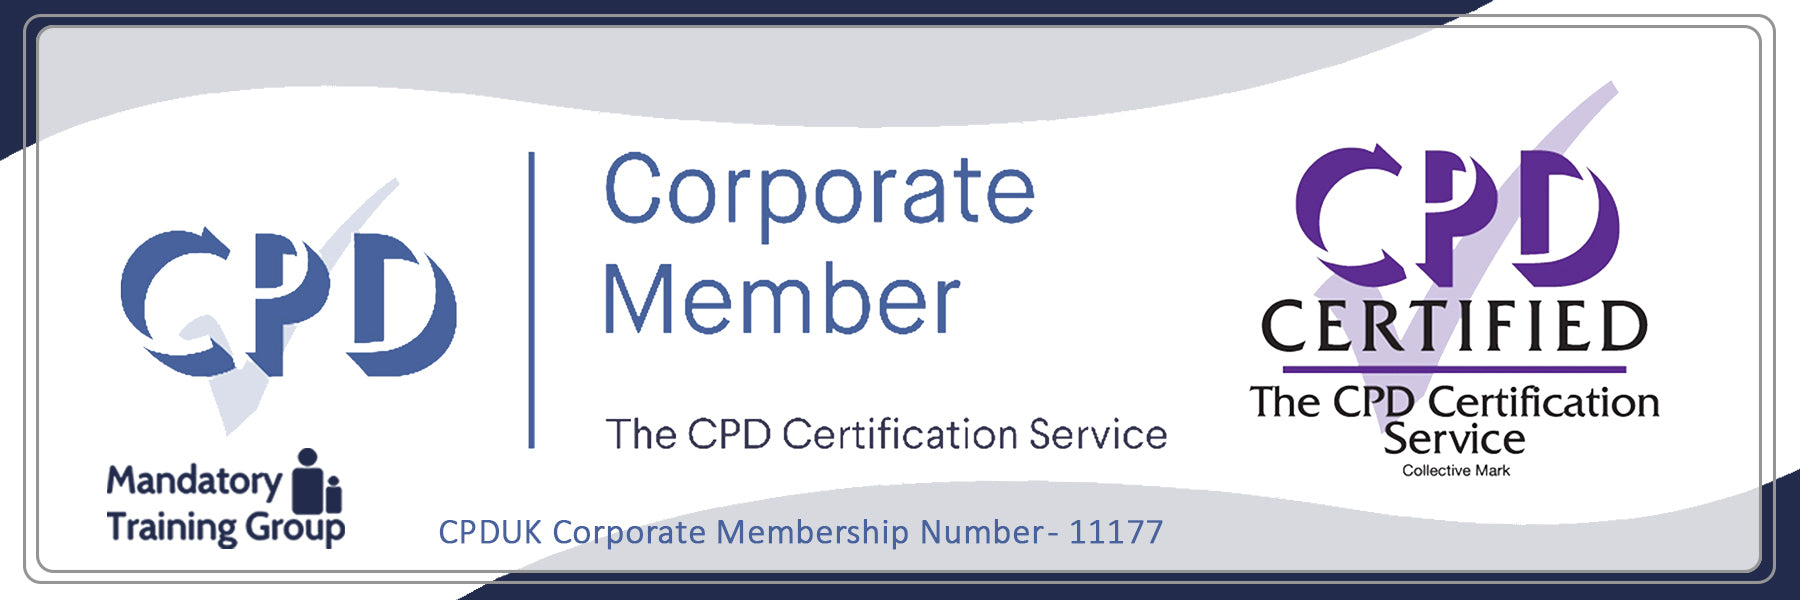 Care Certificate Assessor - Online CPD Course - The Mandatory Training Group UK -